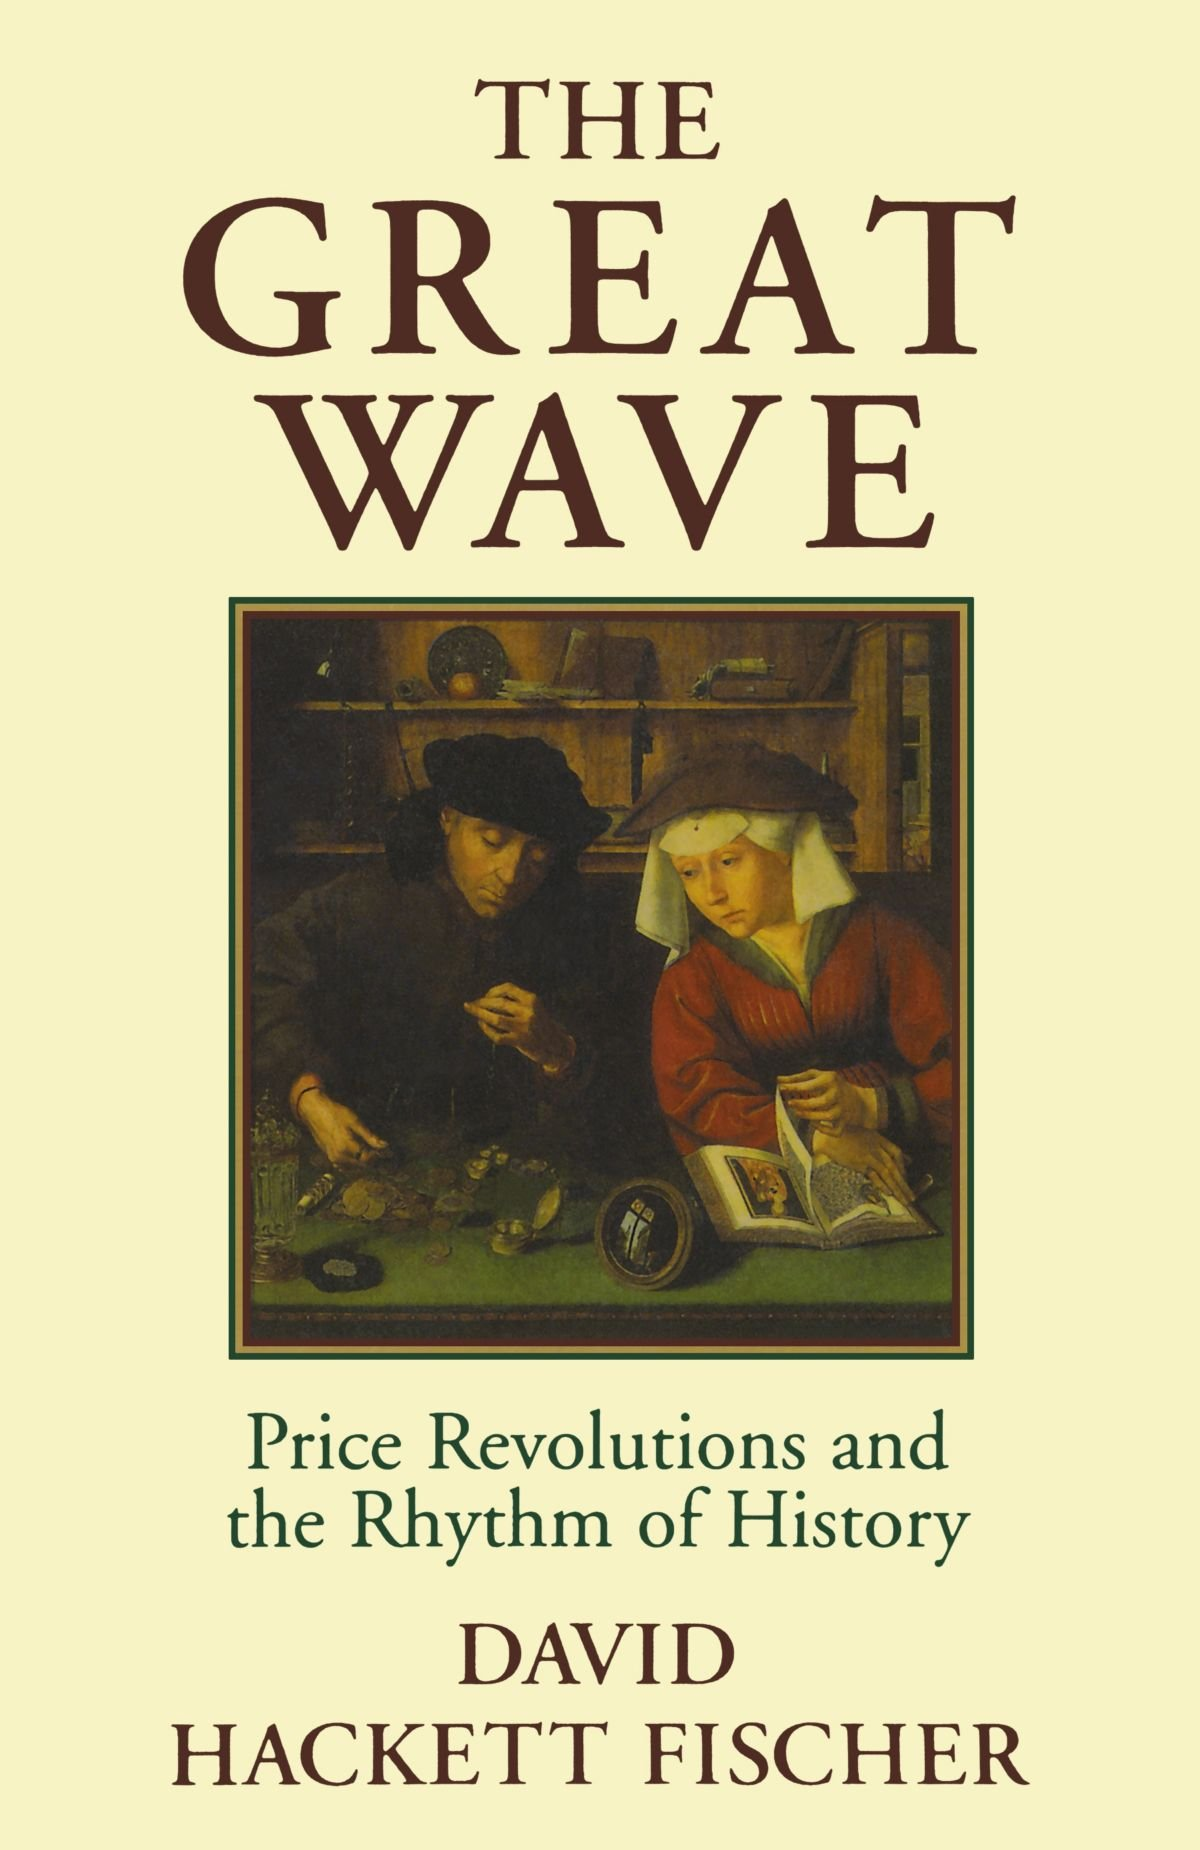 The Great Wave: Price Revolutions and the Rhythm of